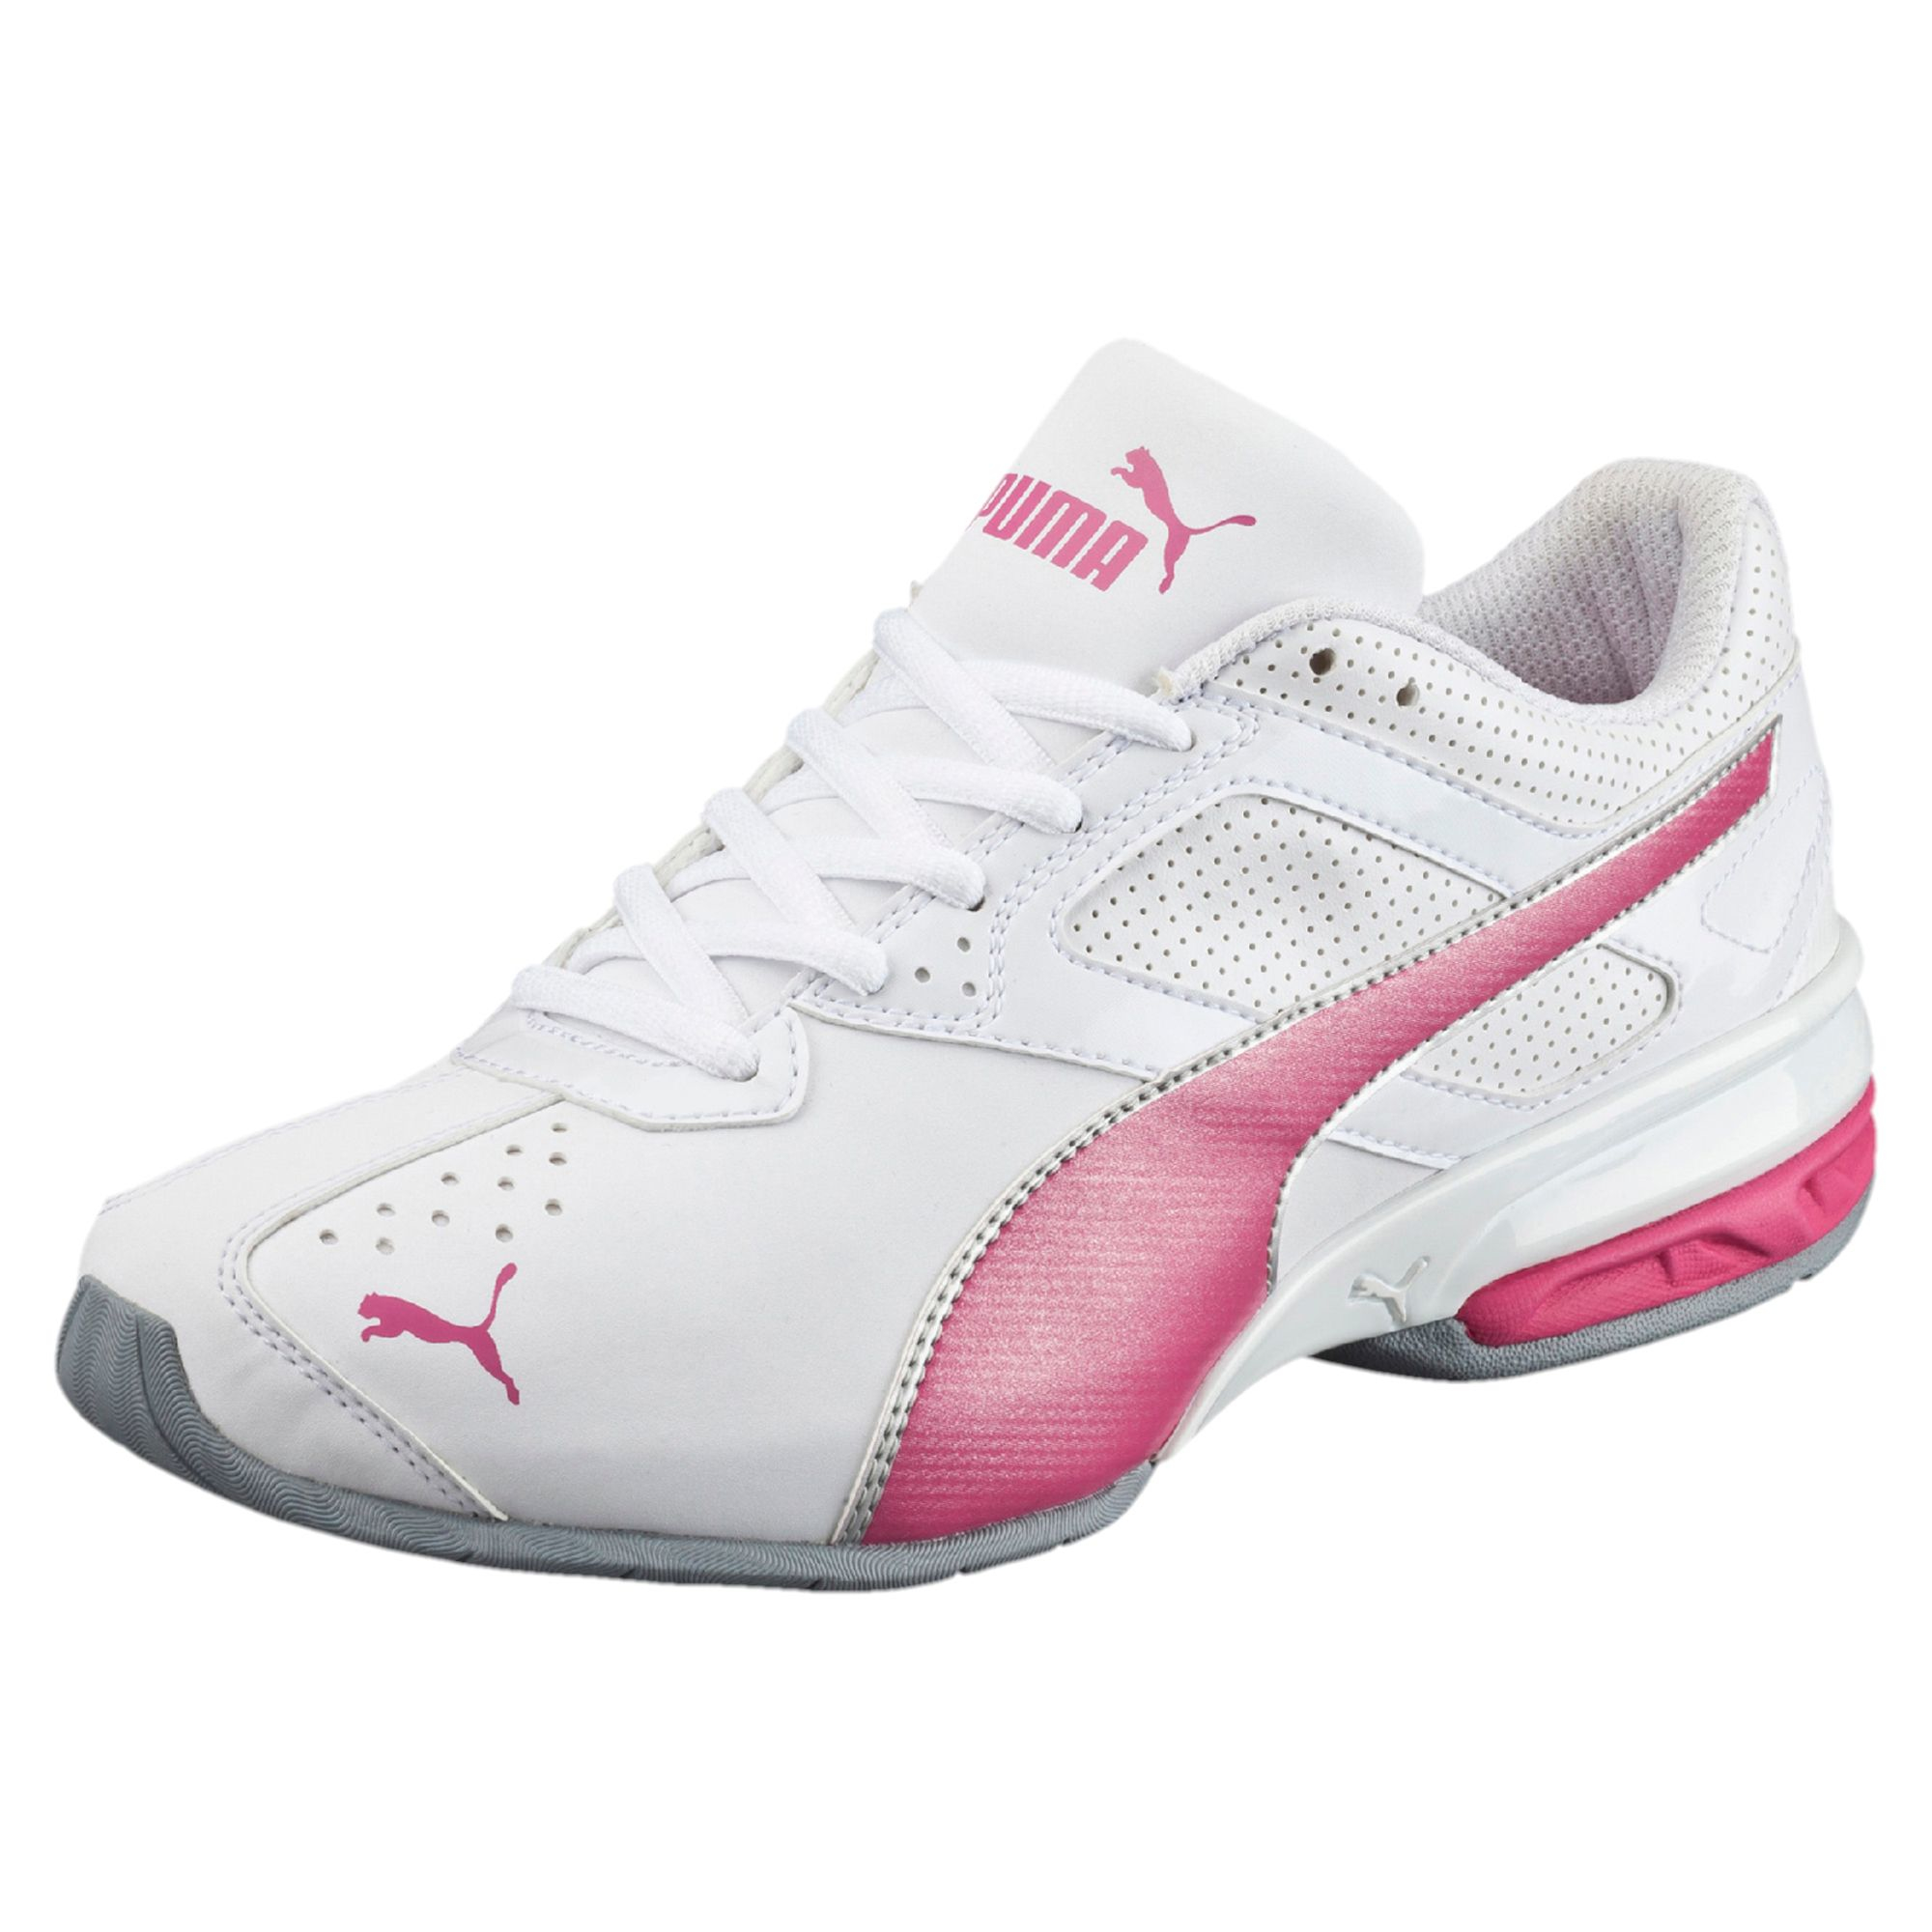 puma shoes pink and white. gallery puma shoes pink and white s